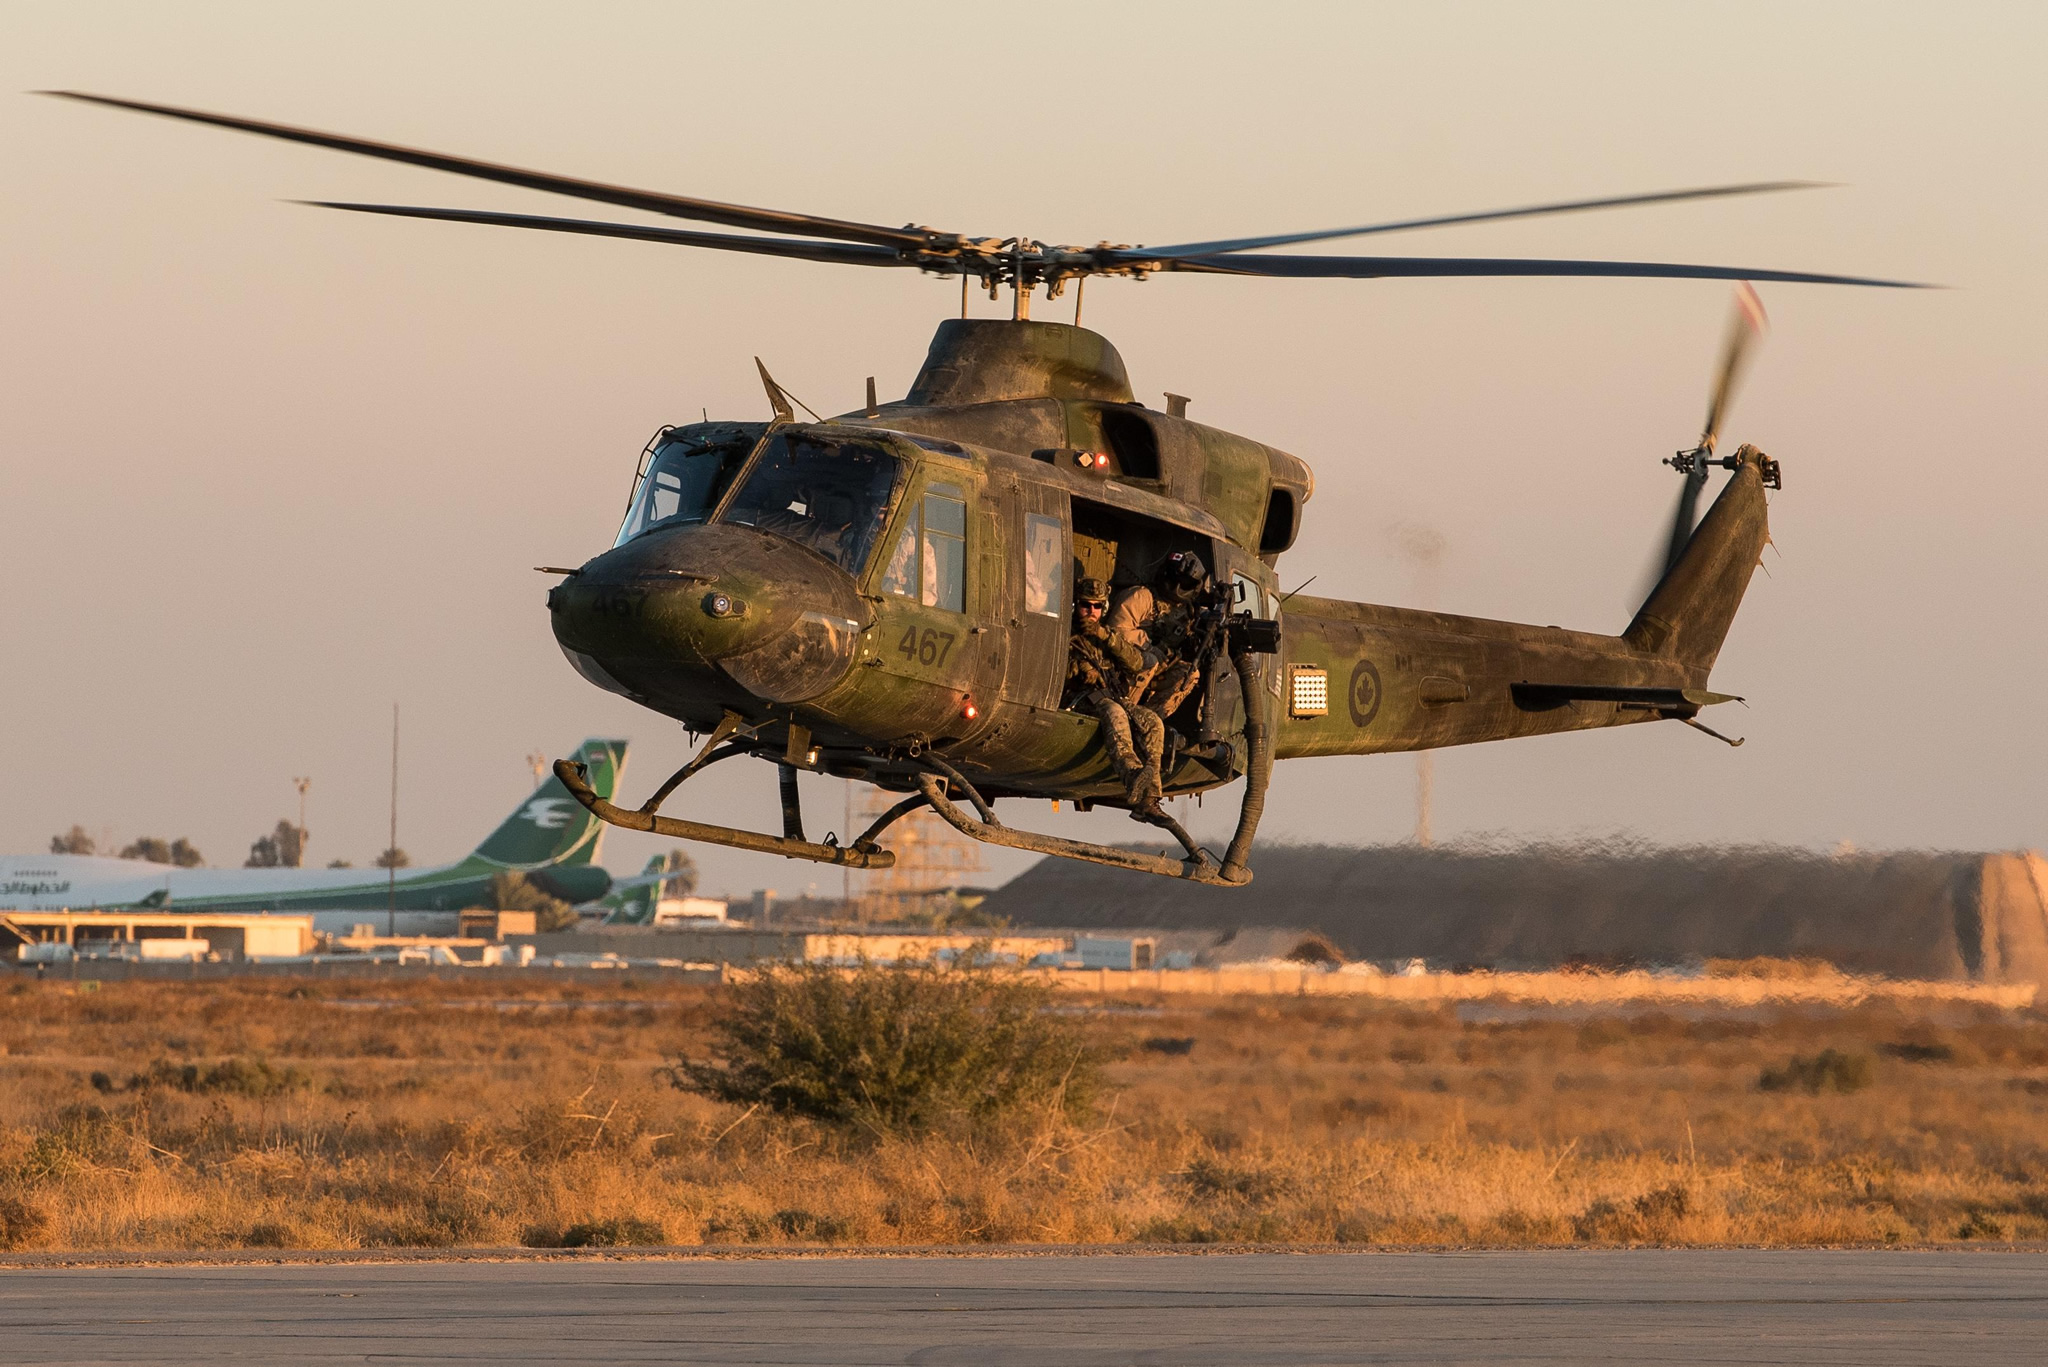 A CH-146 Griffon helicopter from 430 Tactical Helicopter Squadron takes off in Northern Iraq during Operation IMPACT, December, 2016. (Photo: Op Impact, DND)